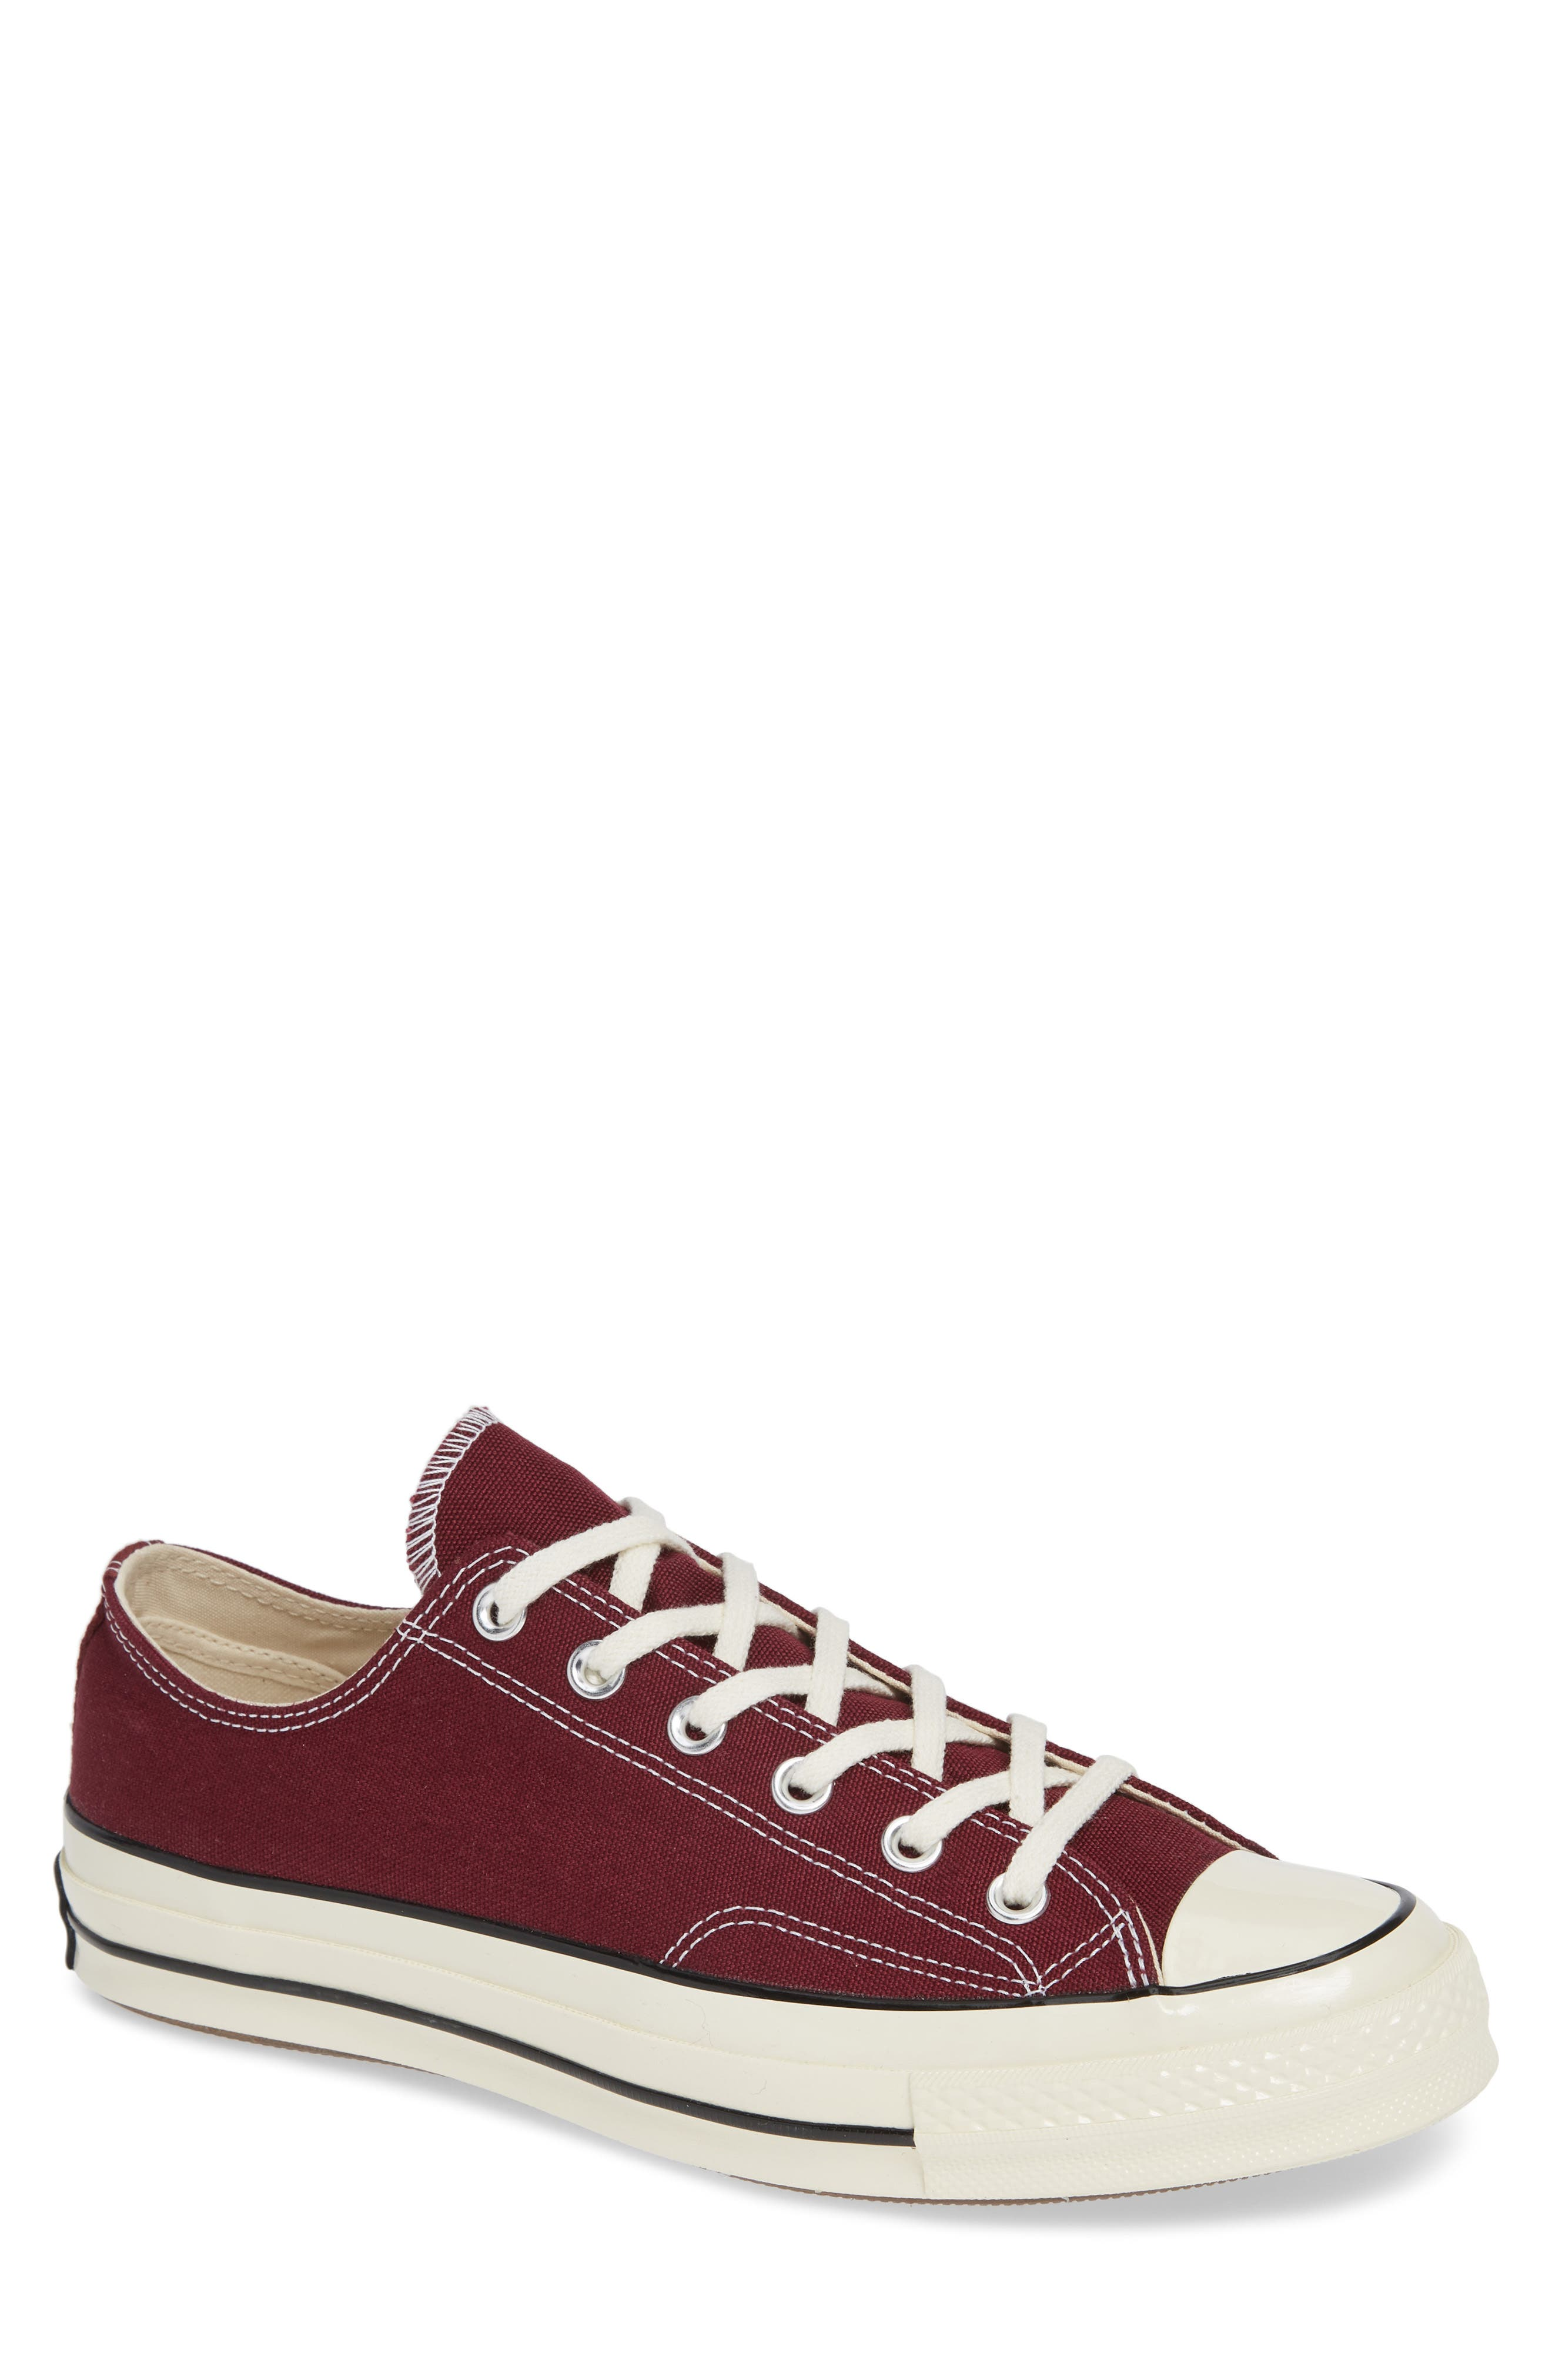 Chuck Taylor<sup>®</sup> All Star<sup>®</sup> 70 Low Top Sneaker,                             Main thumbnail 1, color,                             BURGUNDY